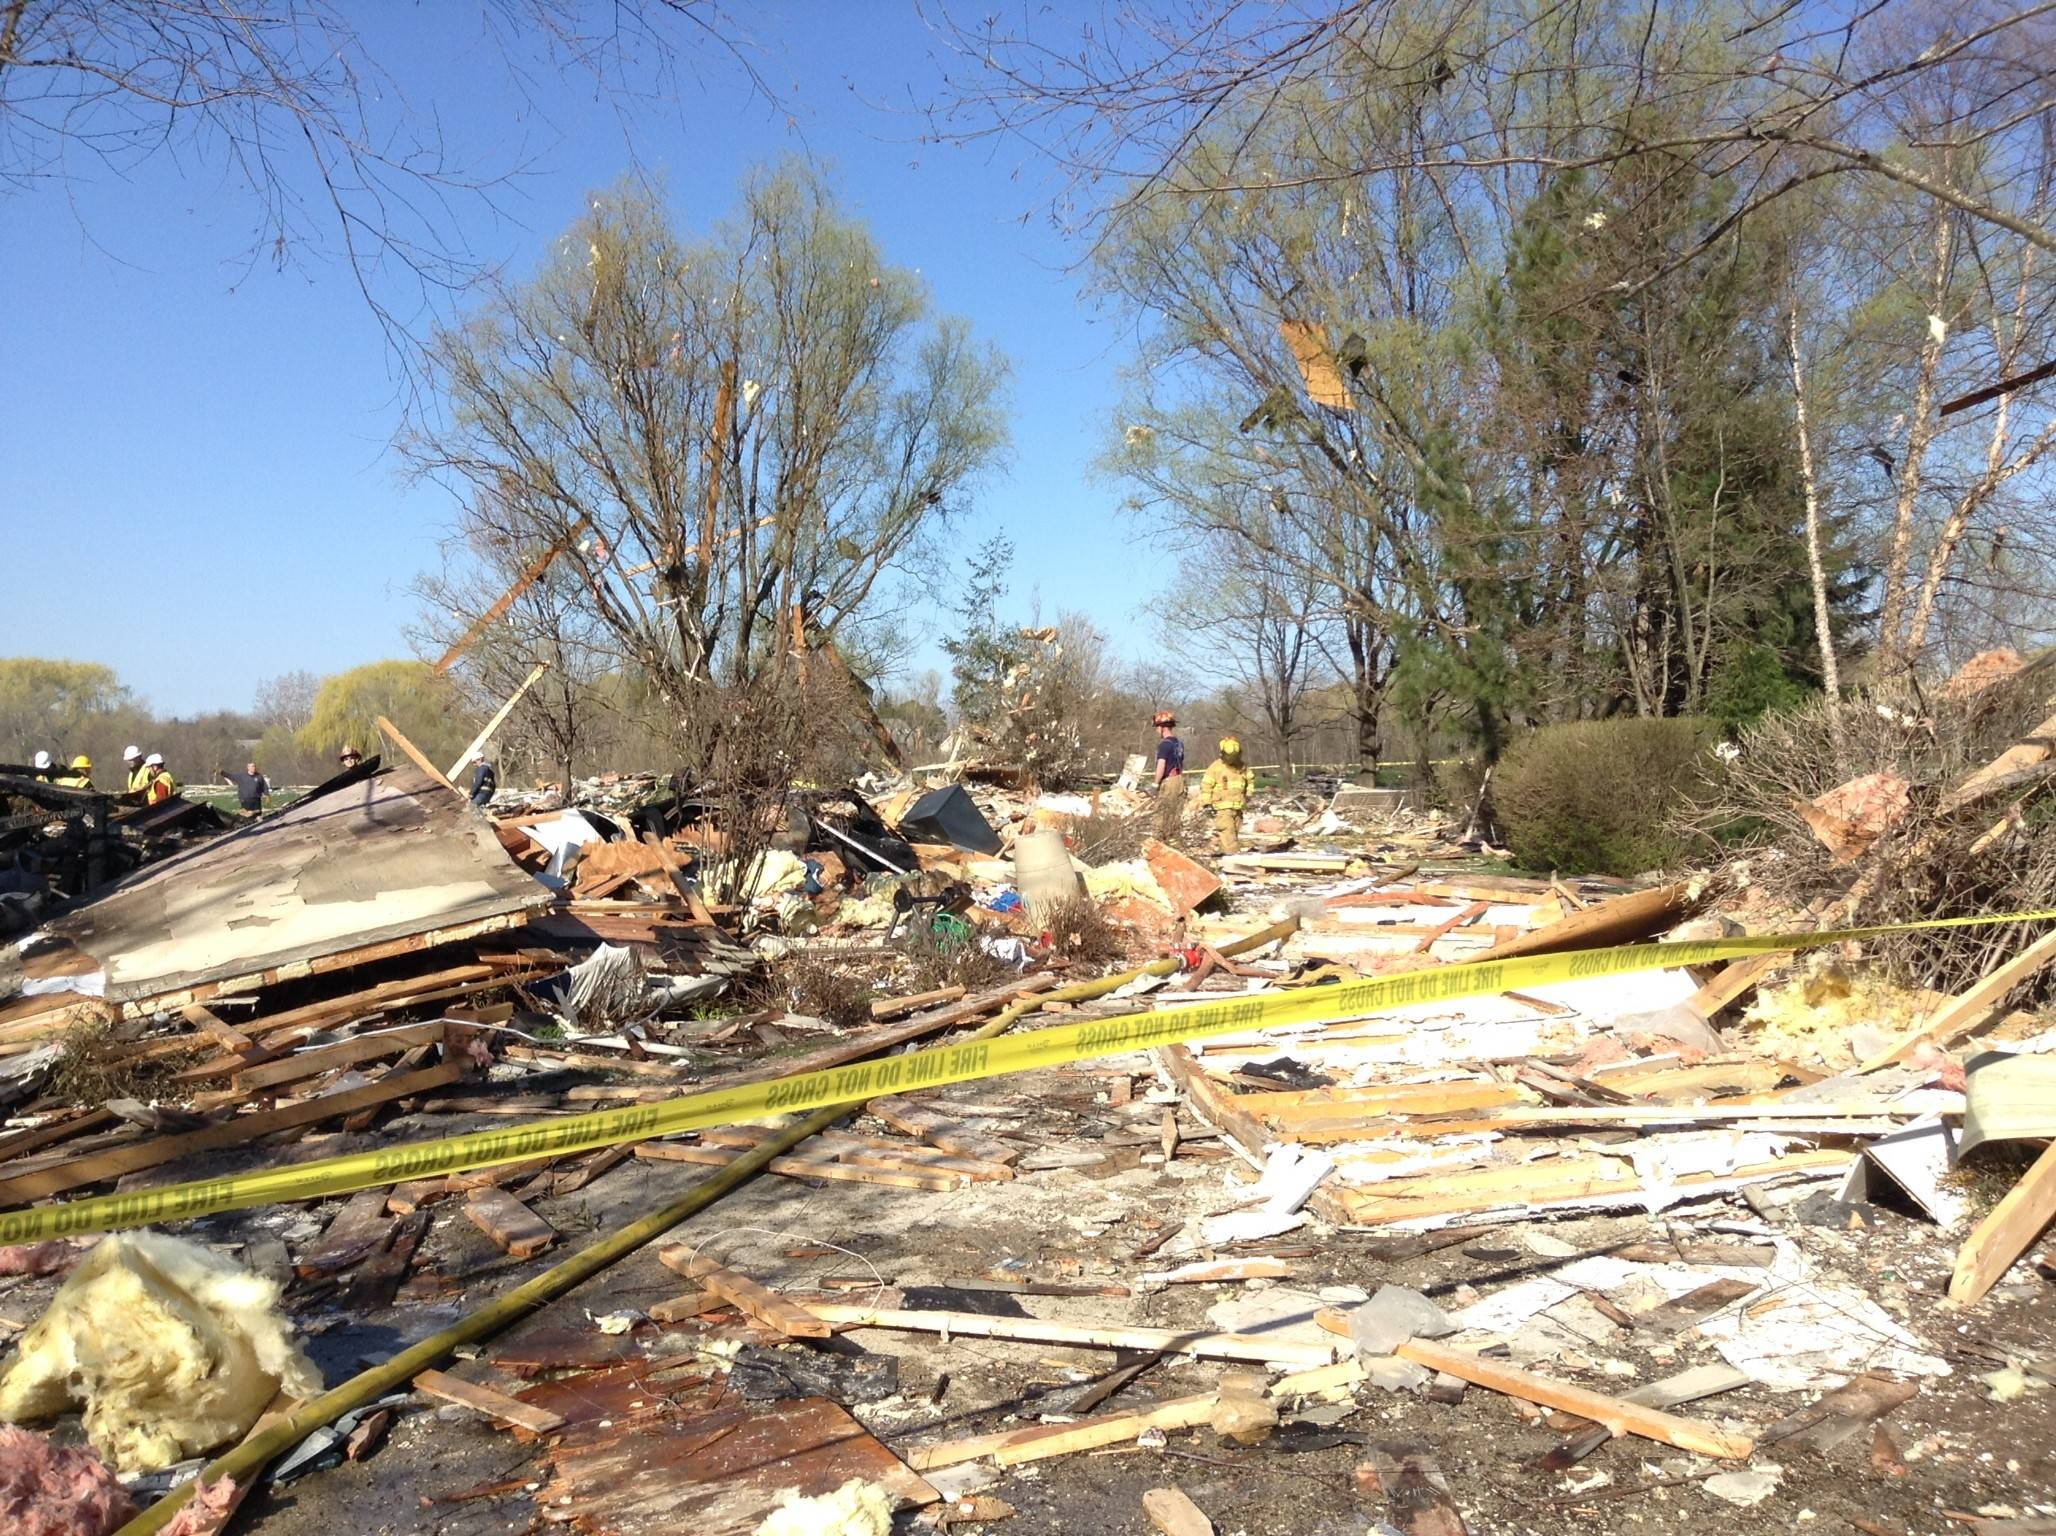 Countryside Fire Protection District officials said a woman just escaped from her home that exploded late Friday in Long Grove. Authorities and cleanup crews were around the debris Saturday. Officials said a preliminary investigation shows the blast was sparked by a natural gas leak.